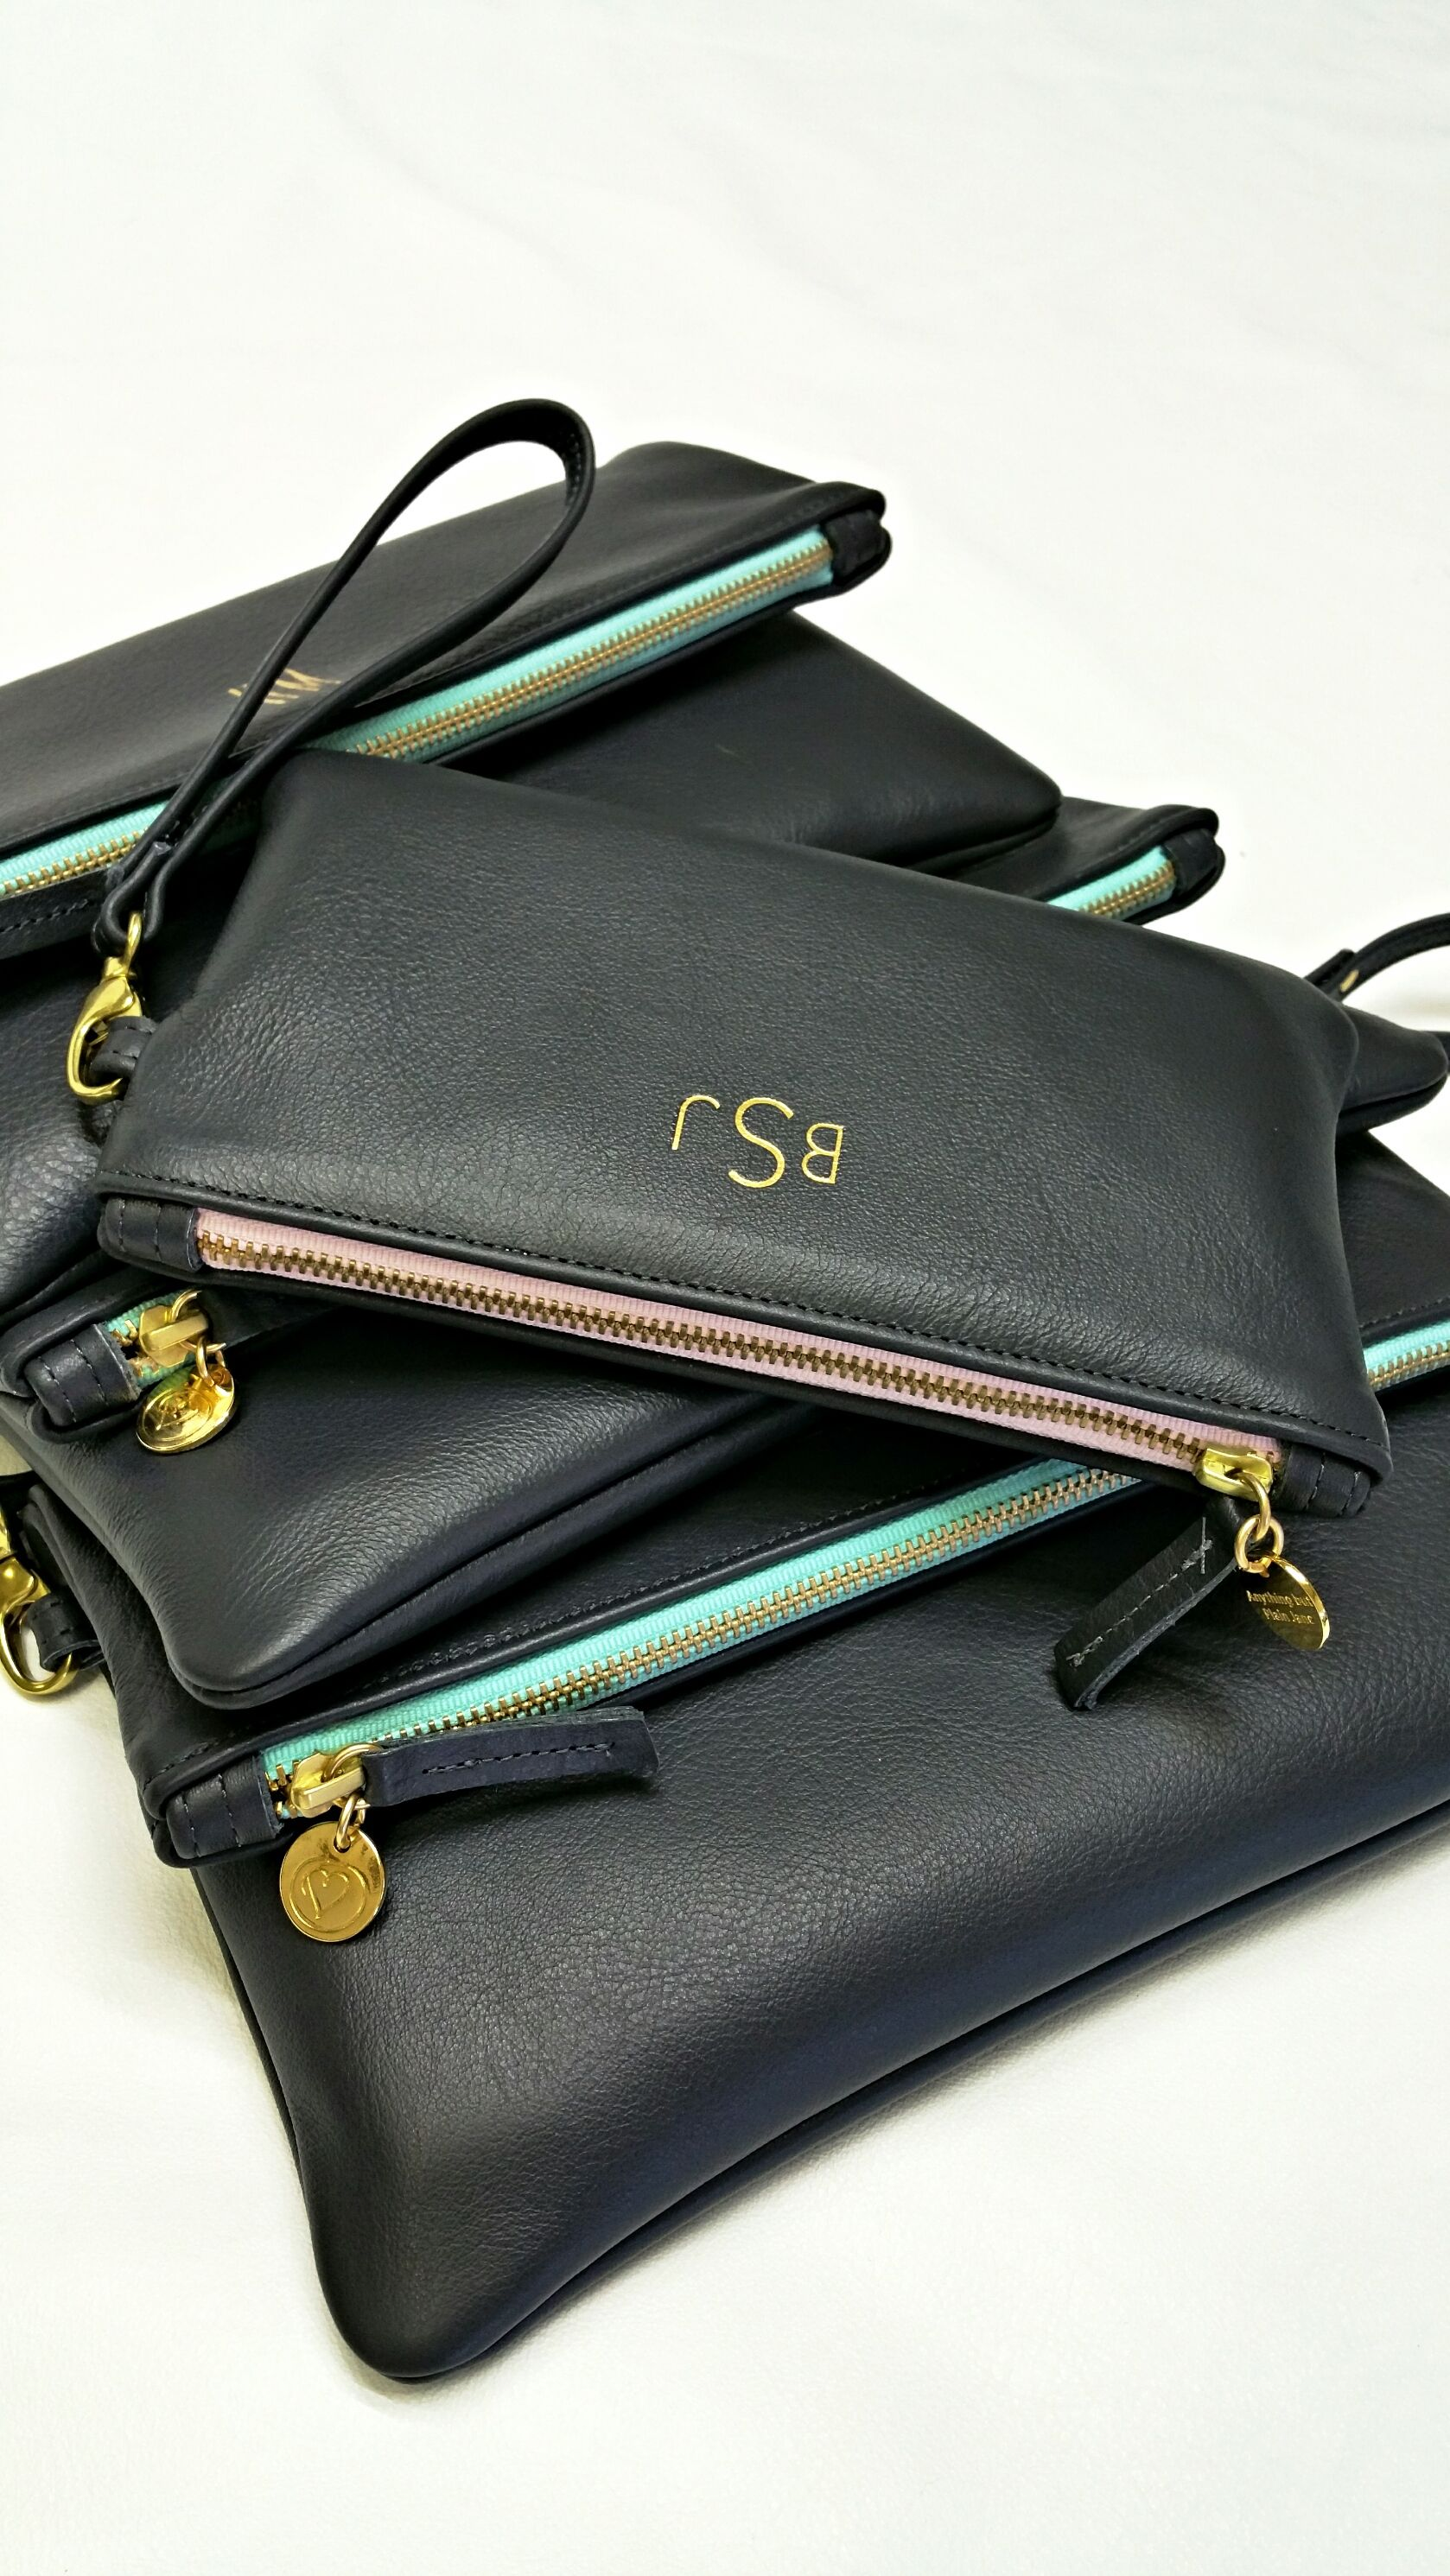 Exquisite Personalized Bridesmaids Maid Of Honor And Wedding Party Gifts Luxury Handcrafted Leather Handbags By Anything But Plain Jane